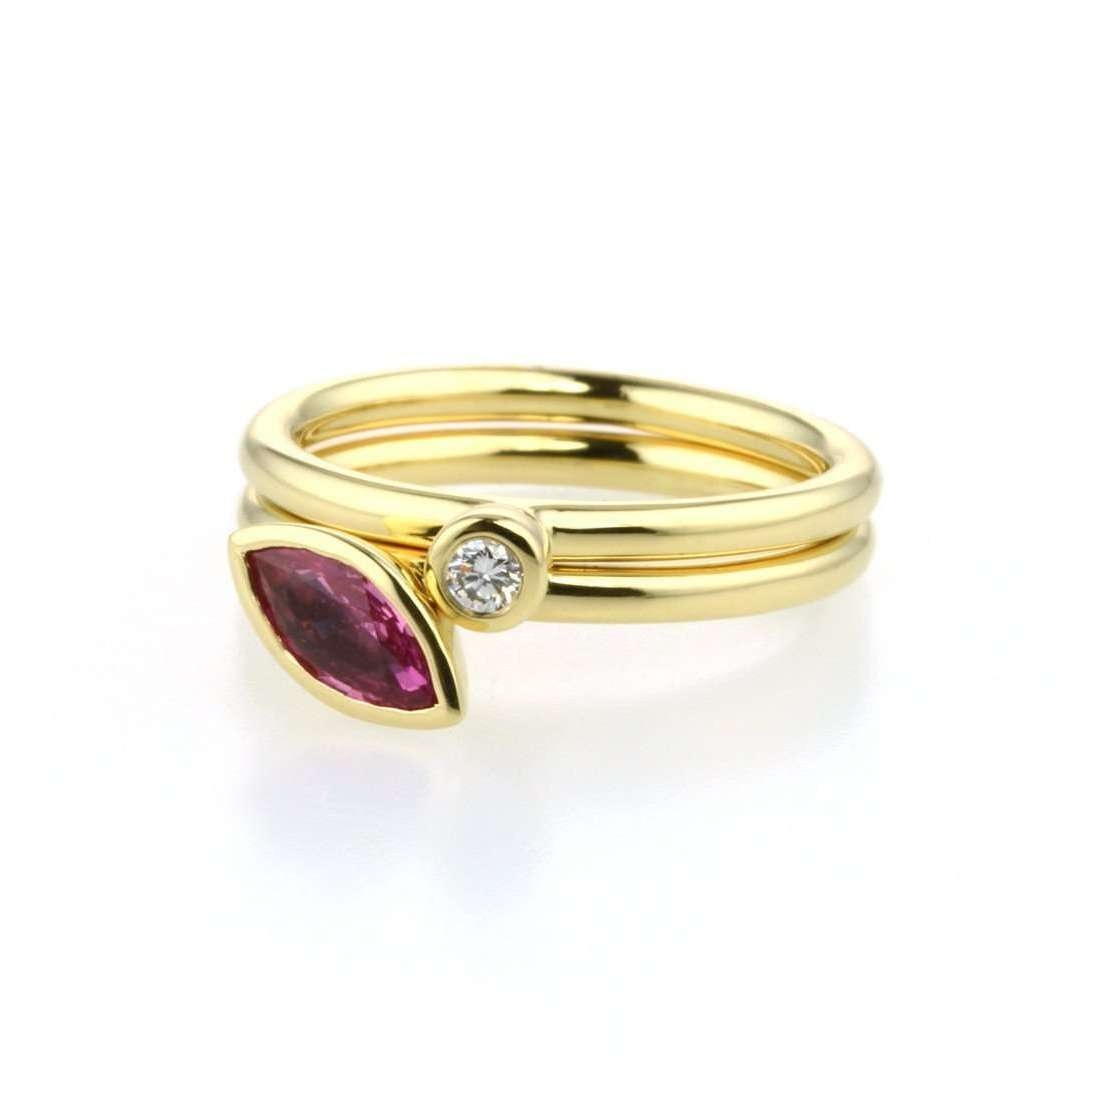 18kt Gold Set of Three Diamond & Sapphire Stacking Rings-Prism Design-JewelStreet US